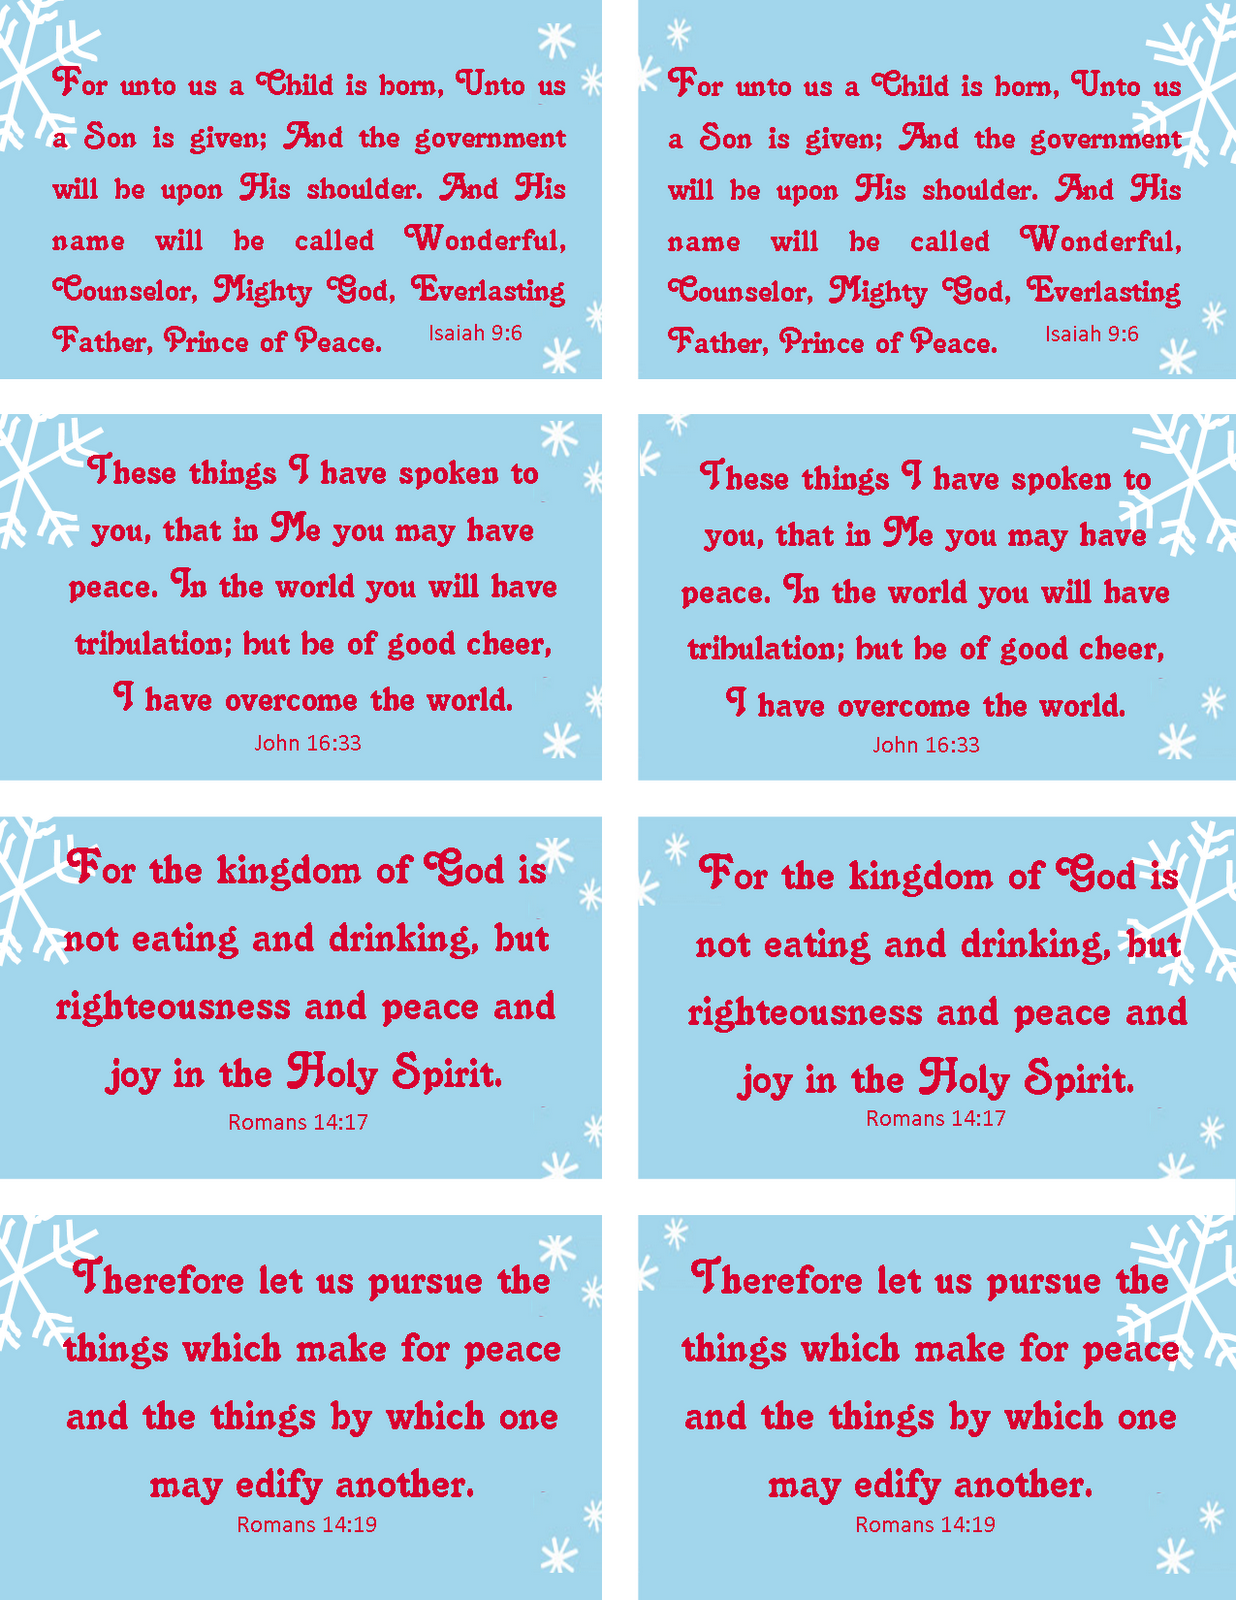 bible quotes for christmas cards quotesgram - Christmas Verses For Cards